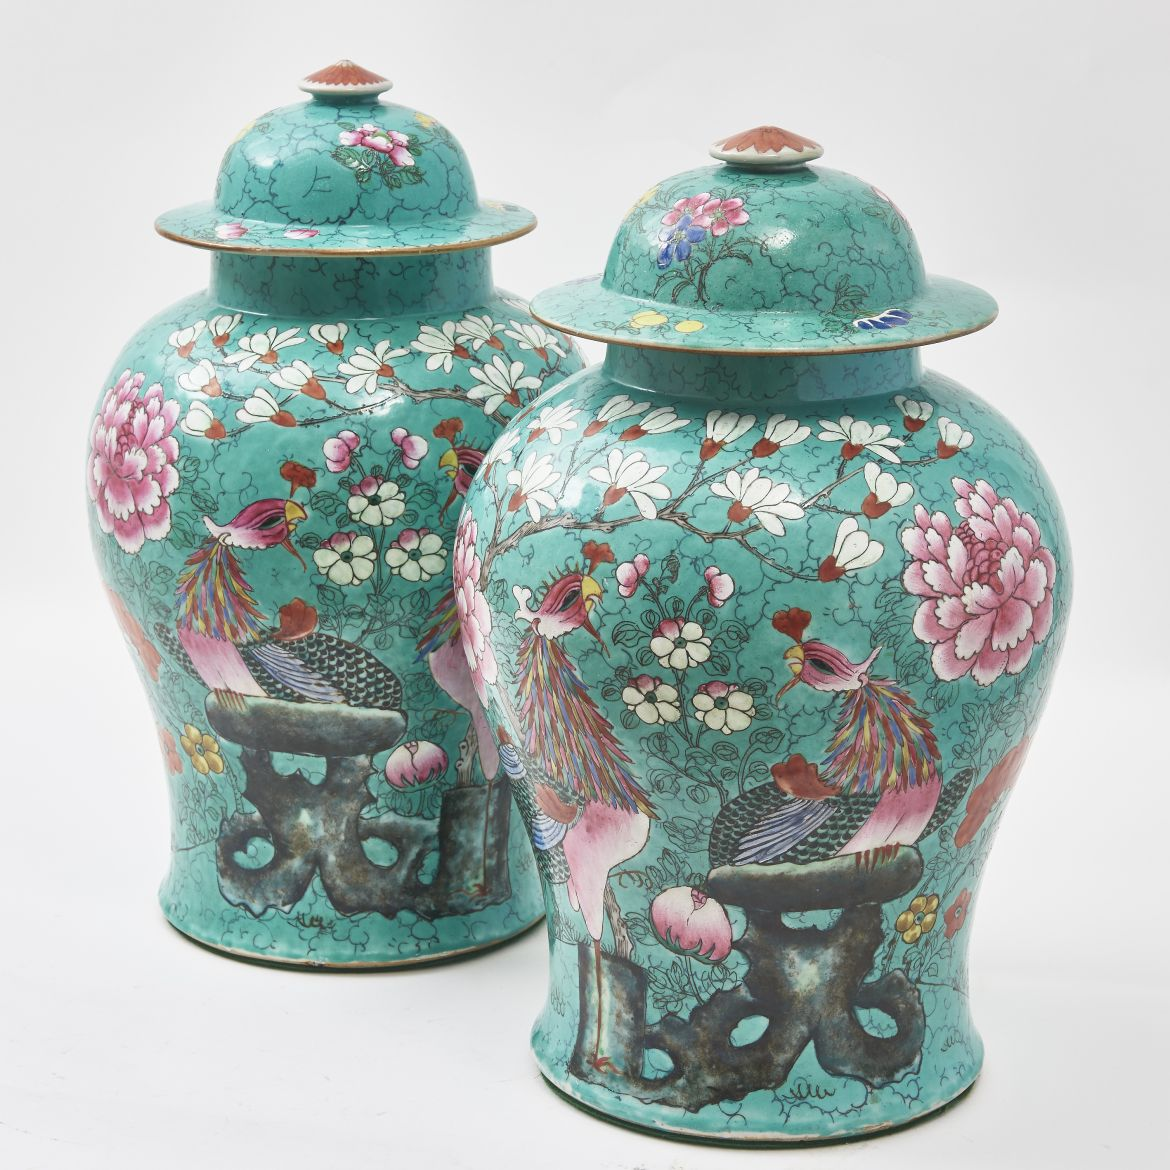 Chinese Porcelain Temple Jars Decorated With Birds Of Paradise